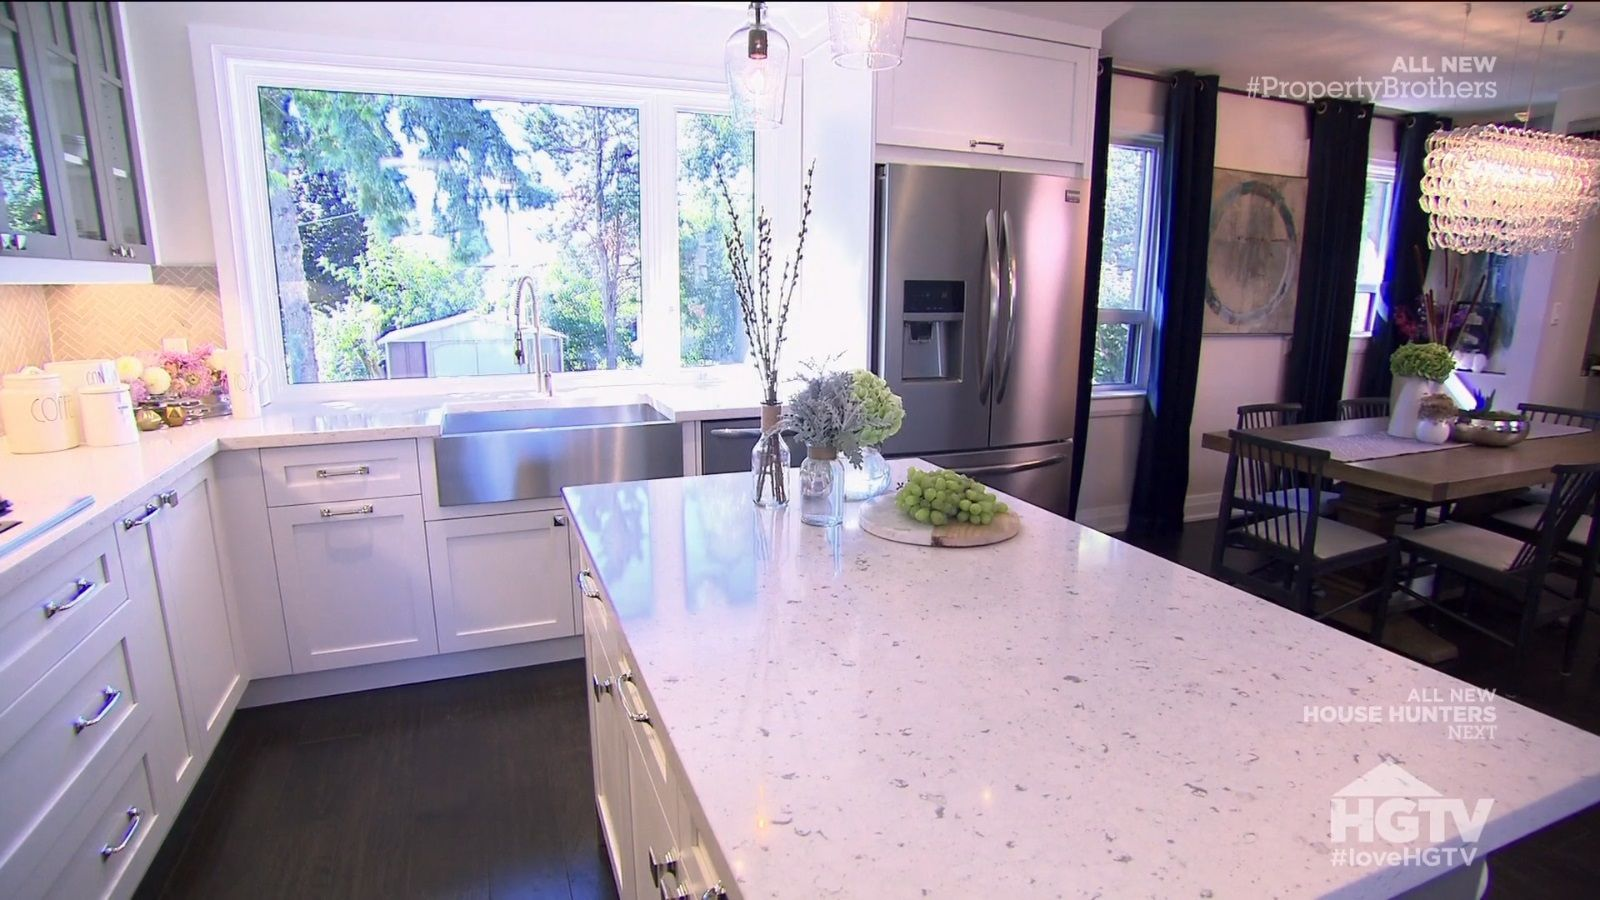 Property Brothers Meeting In The Middle Love The Layout Island Stools Open To The Dining Room